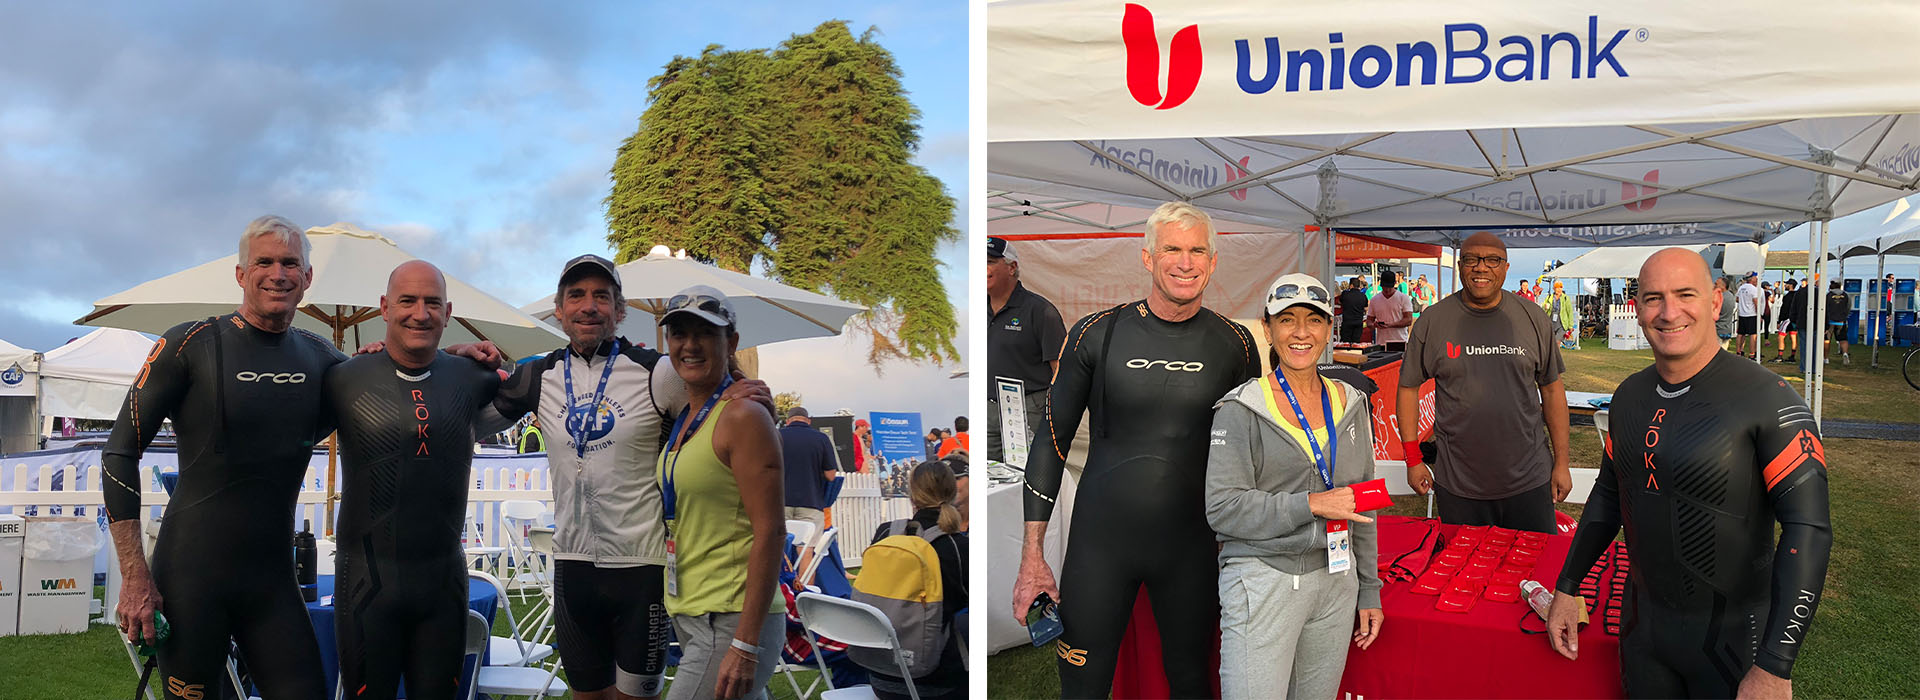 David Jochim and Union Bank supporting the San Diego Triathlon Challenge